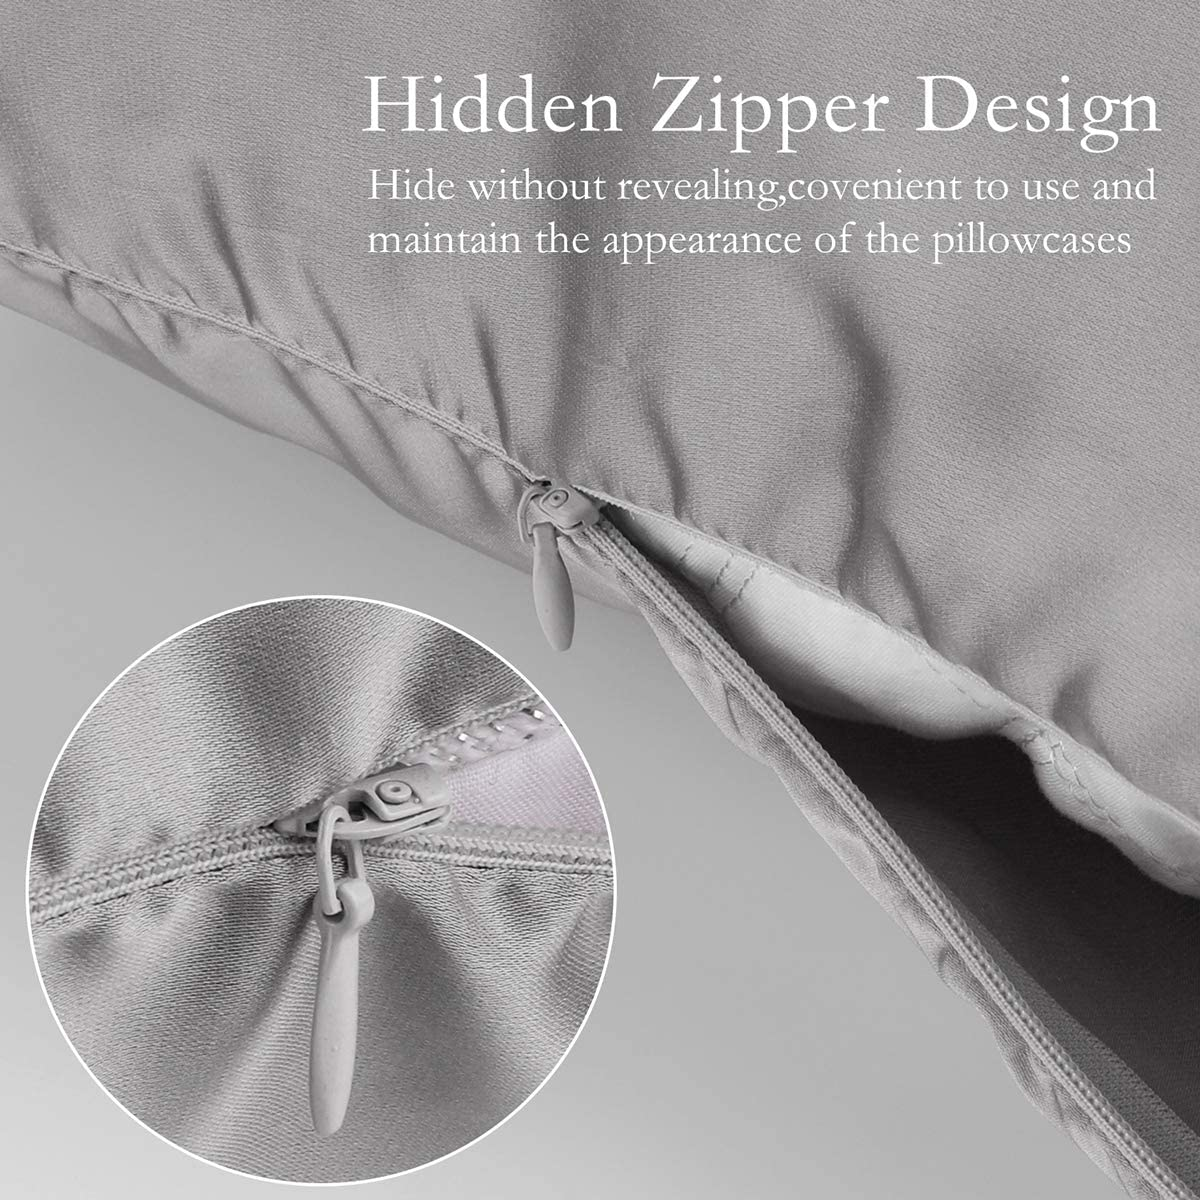 JOGJUE Silk Pillowcase for Hair and Skin 2 Pack 100% Mulberry Silk Bed Pillowcase Hypoallergenic Soft Breathable Both Sides Silk Pillow Case with Hidden Zipper, Standard Size Pillow Cases (Grey): Kitchen & Dining